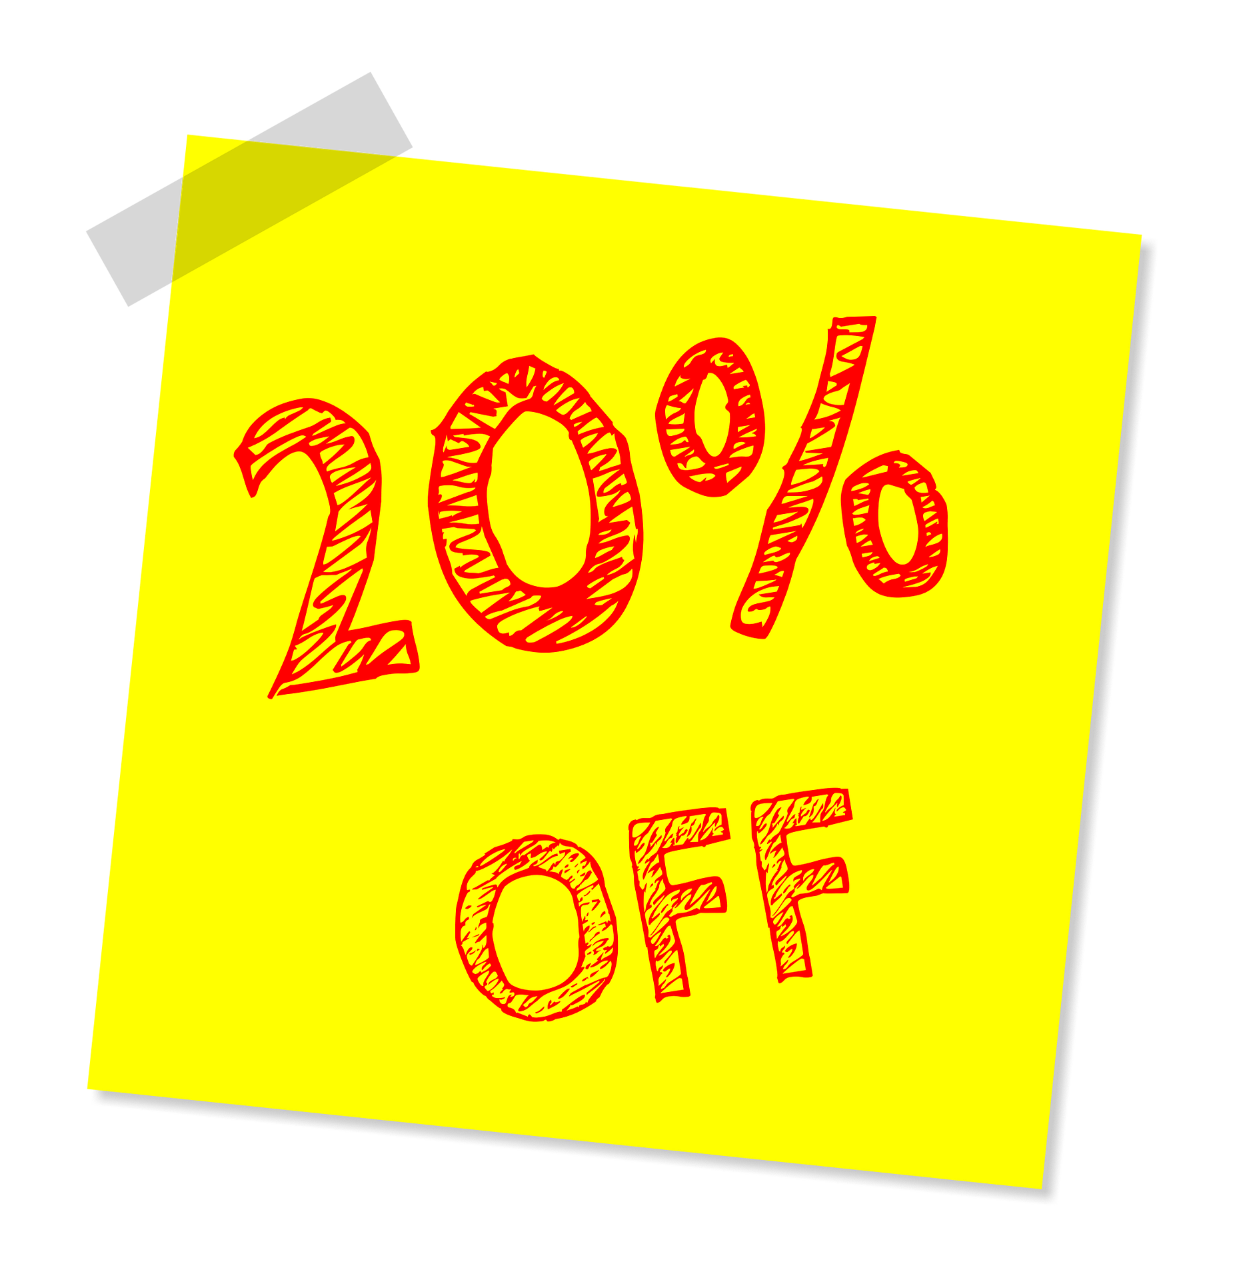 20 per cent off post-it note